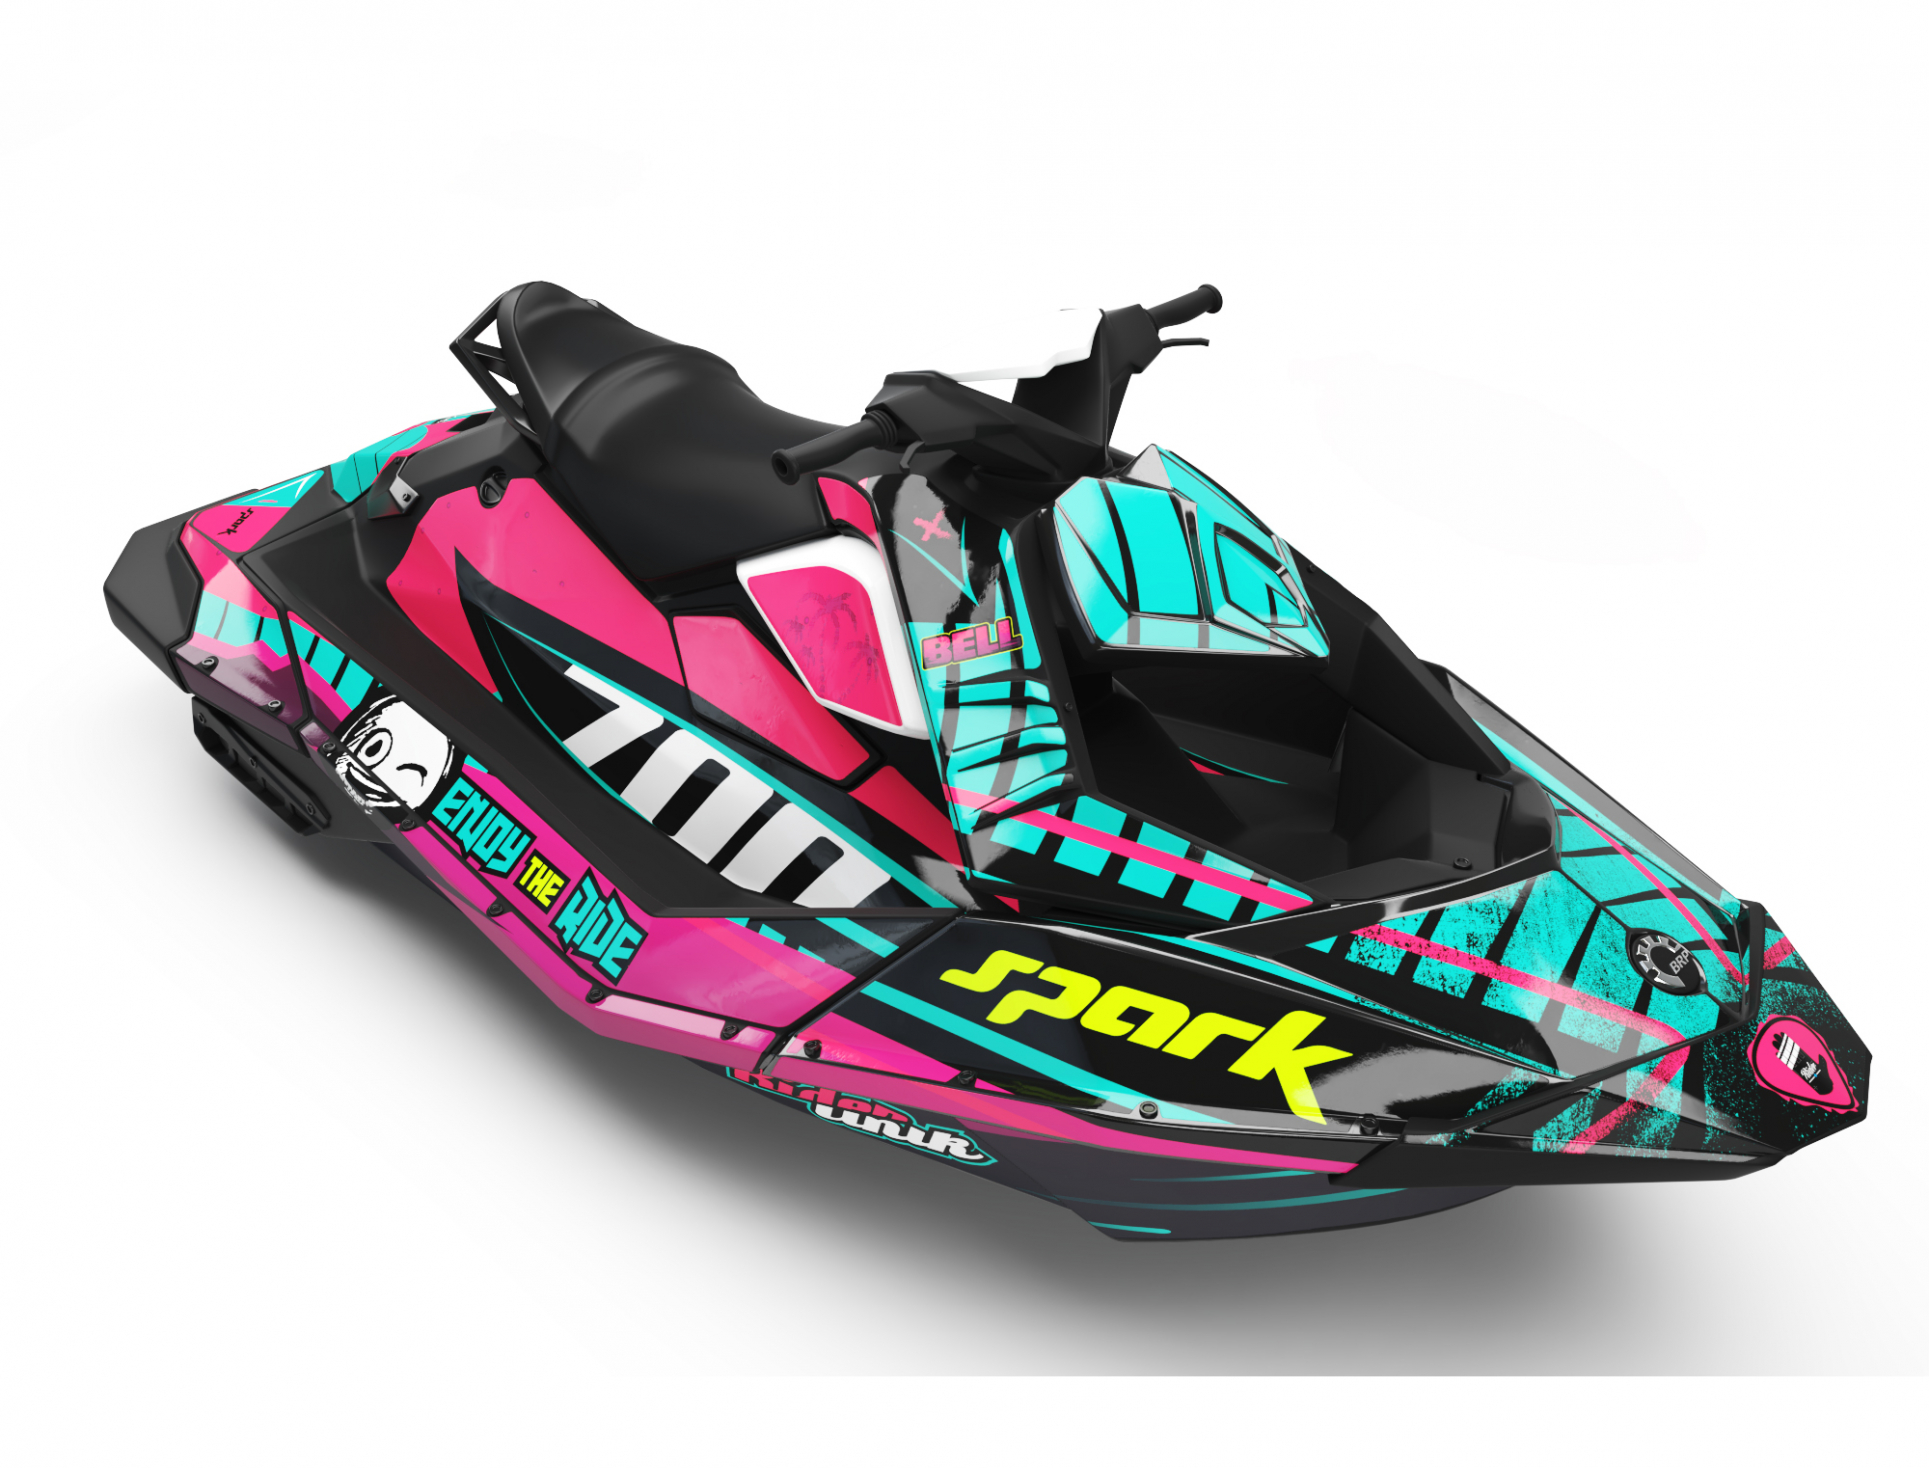 KIT DECO SEA-DOO SPARK ENJOY THE RIDE CUP